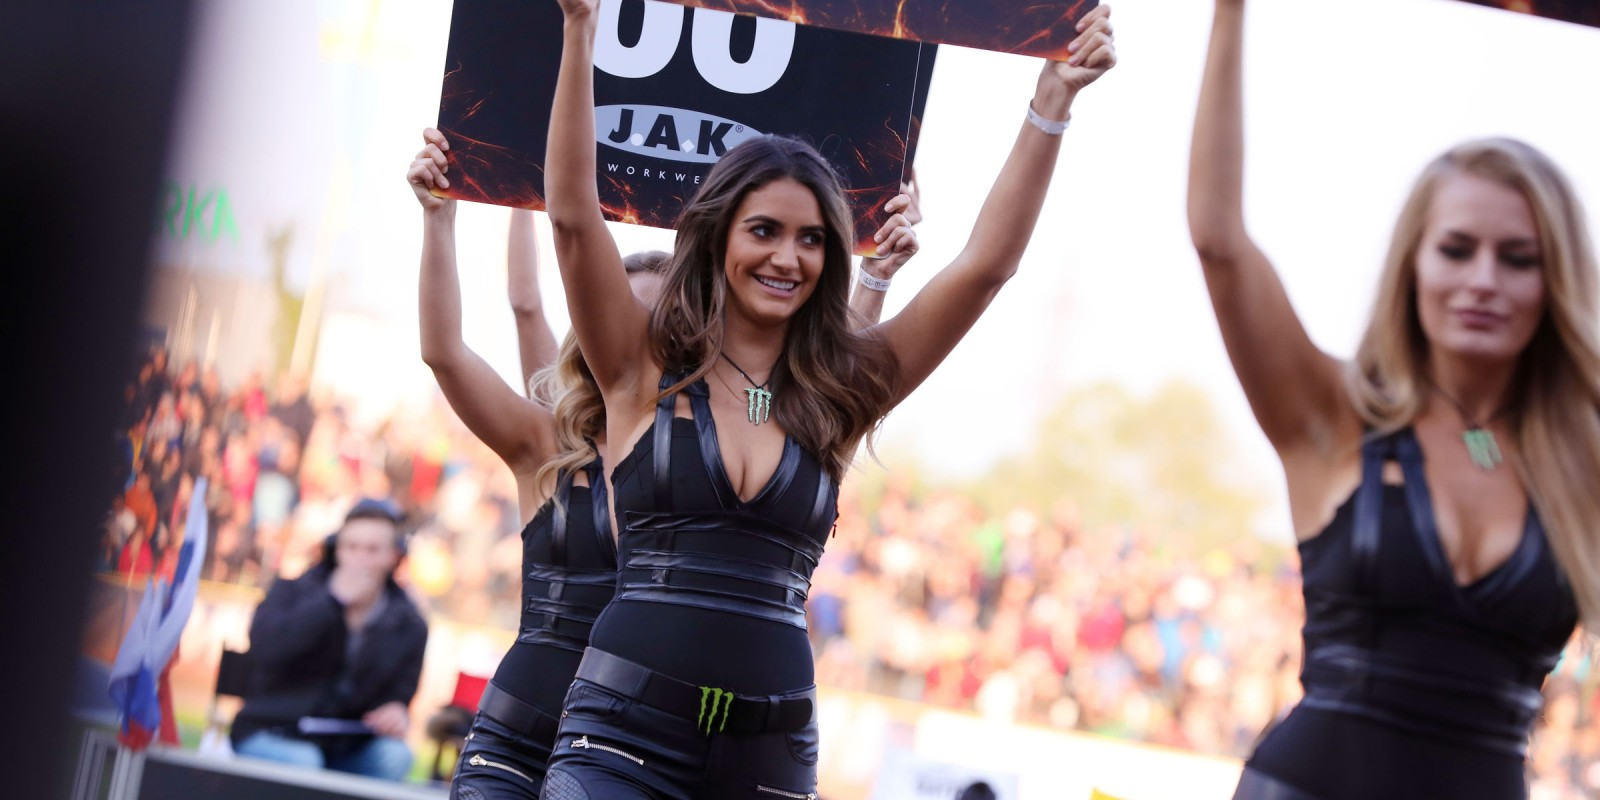 2017 Monster Girls Attending the Speedway GP at Slovenia